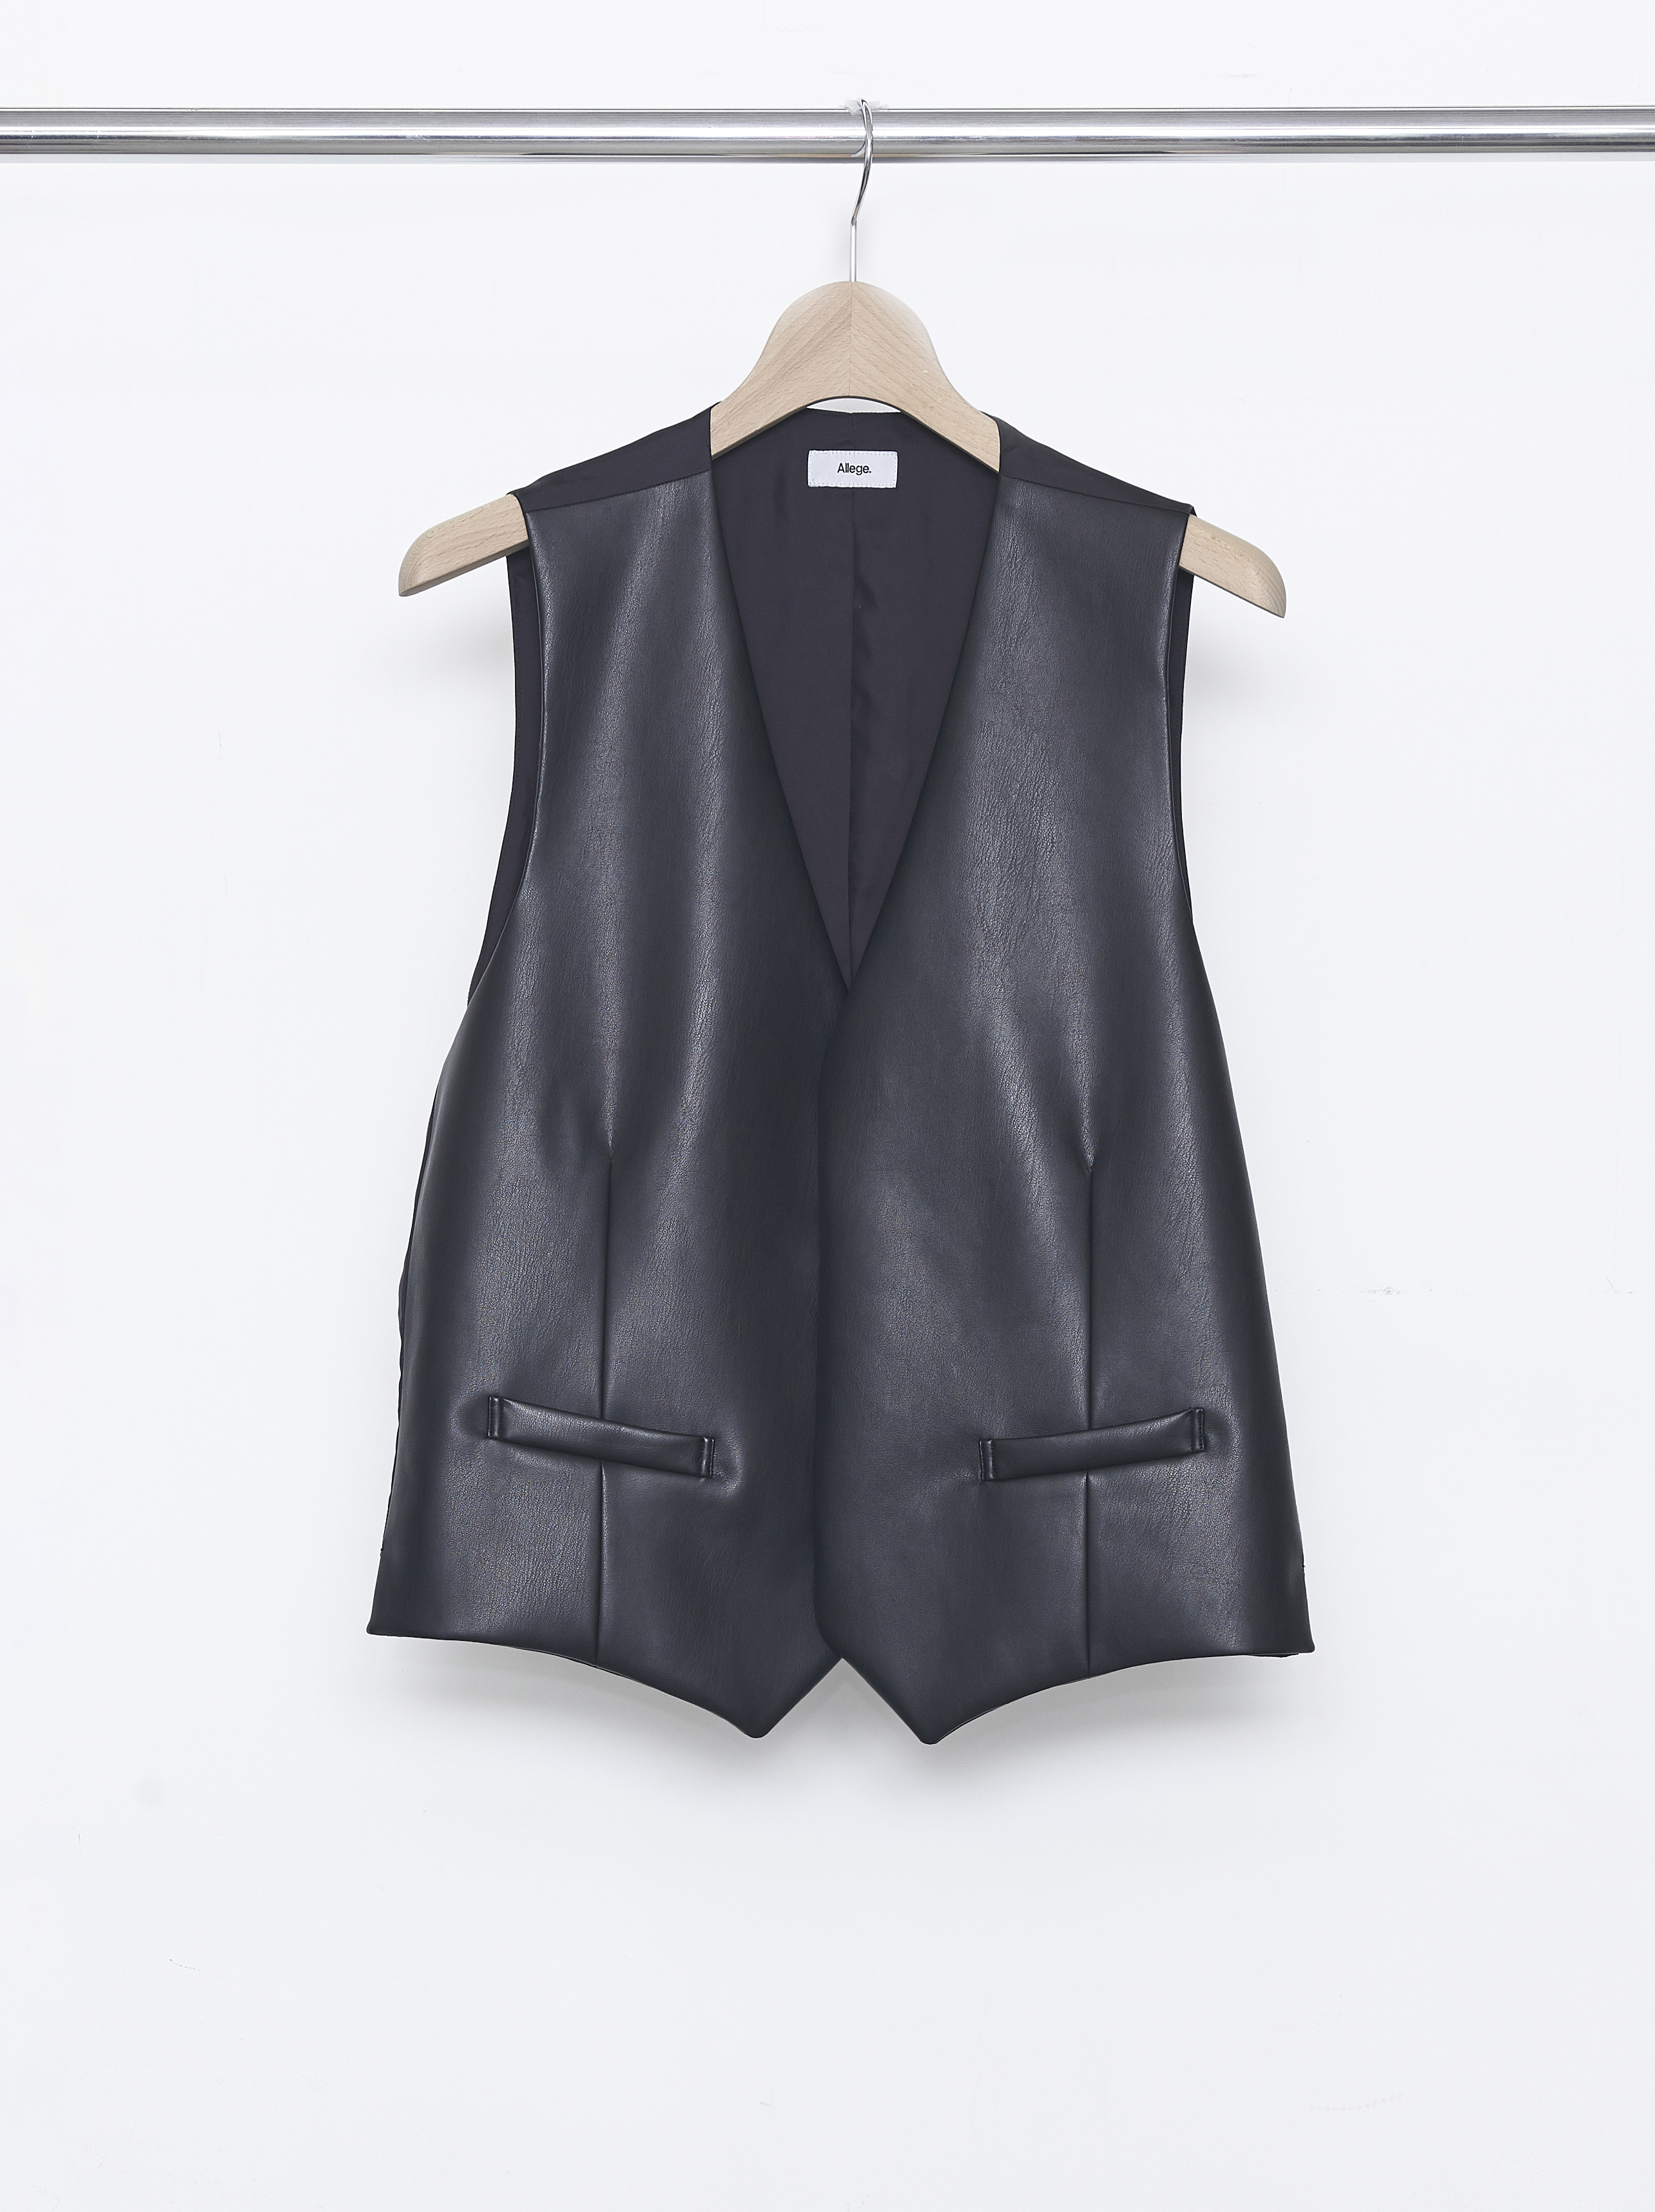 Synthetic Leather Gilet - Black